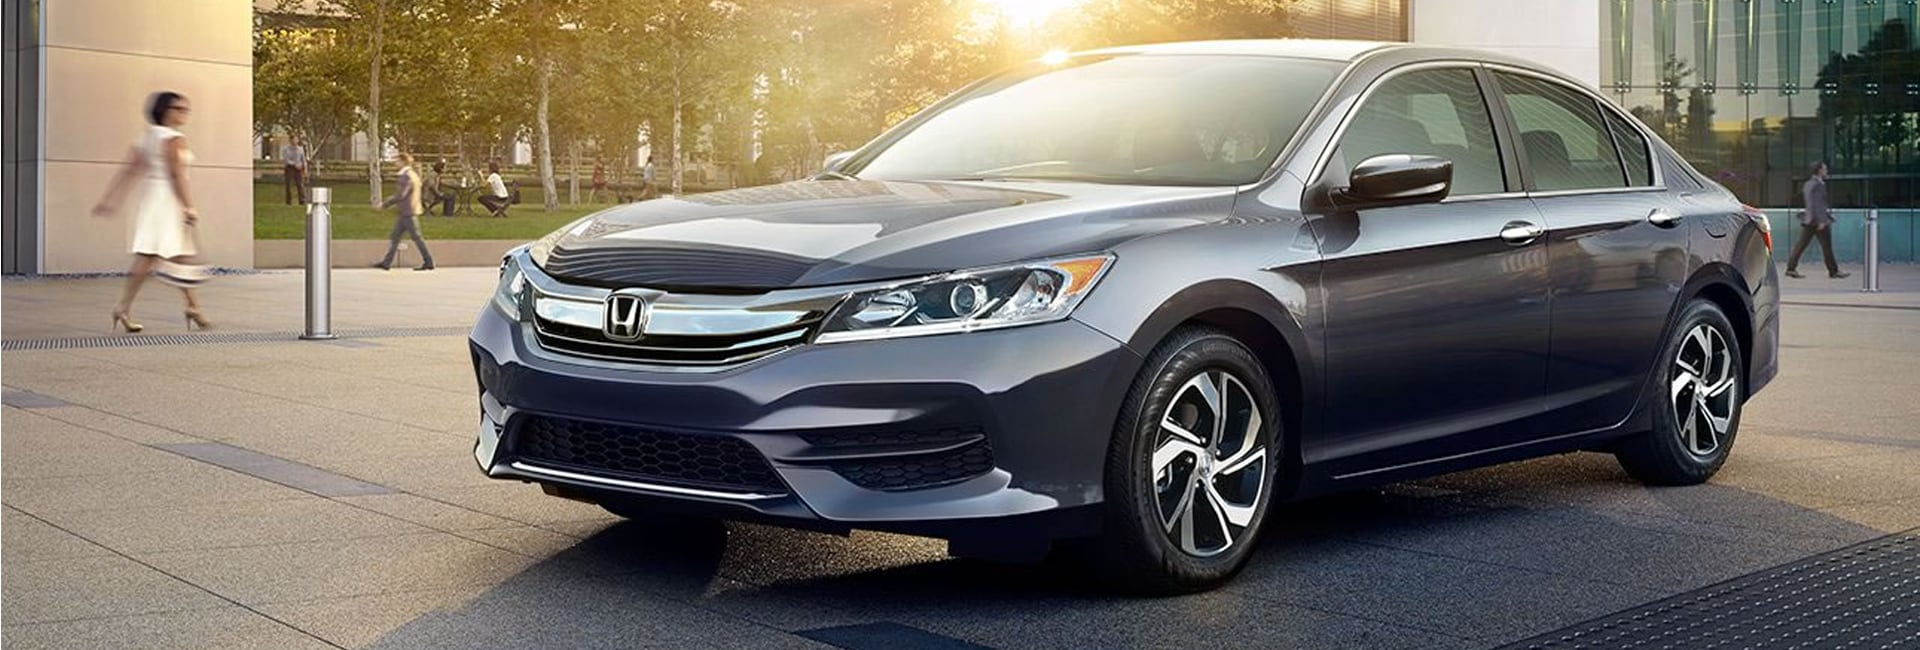 2017 Honda Accord Exterior Features